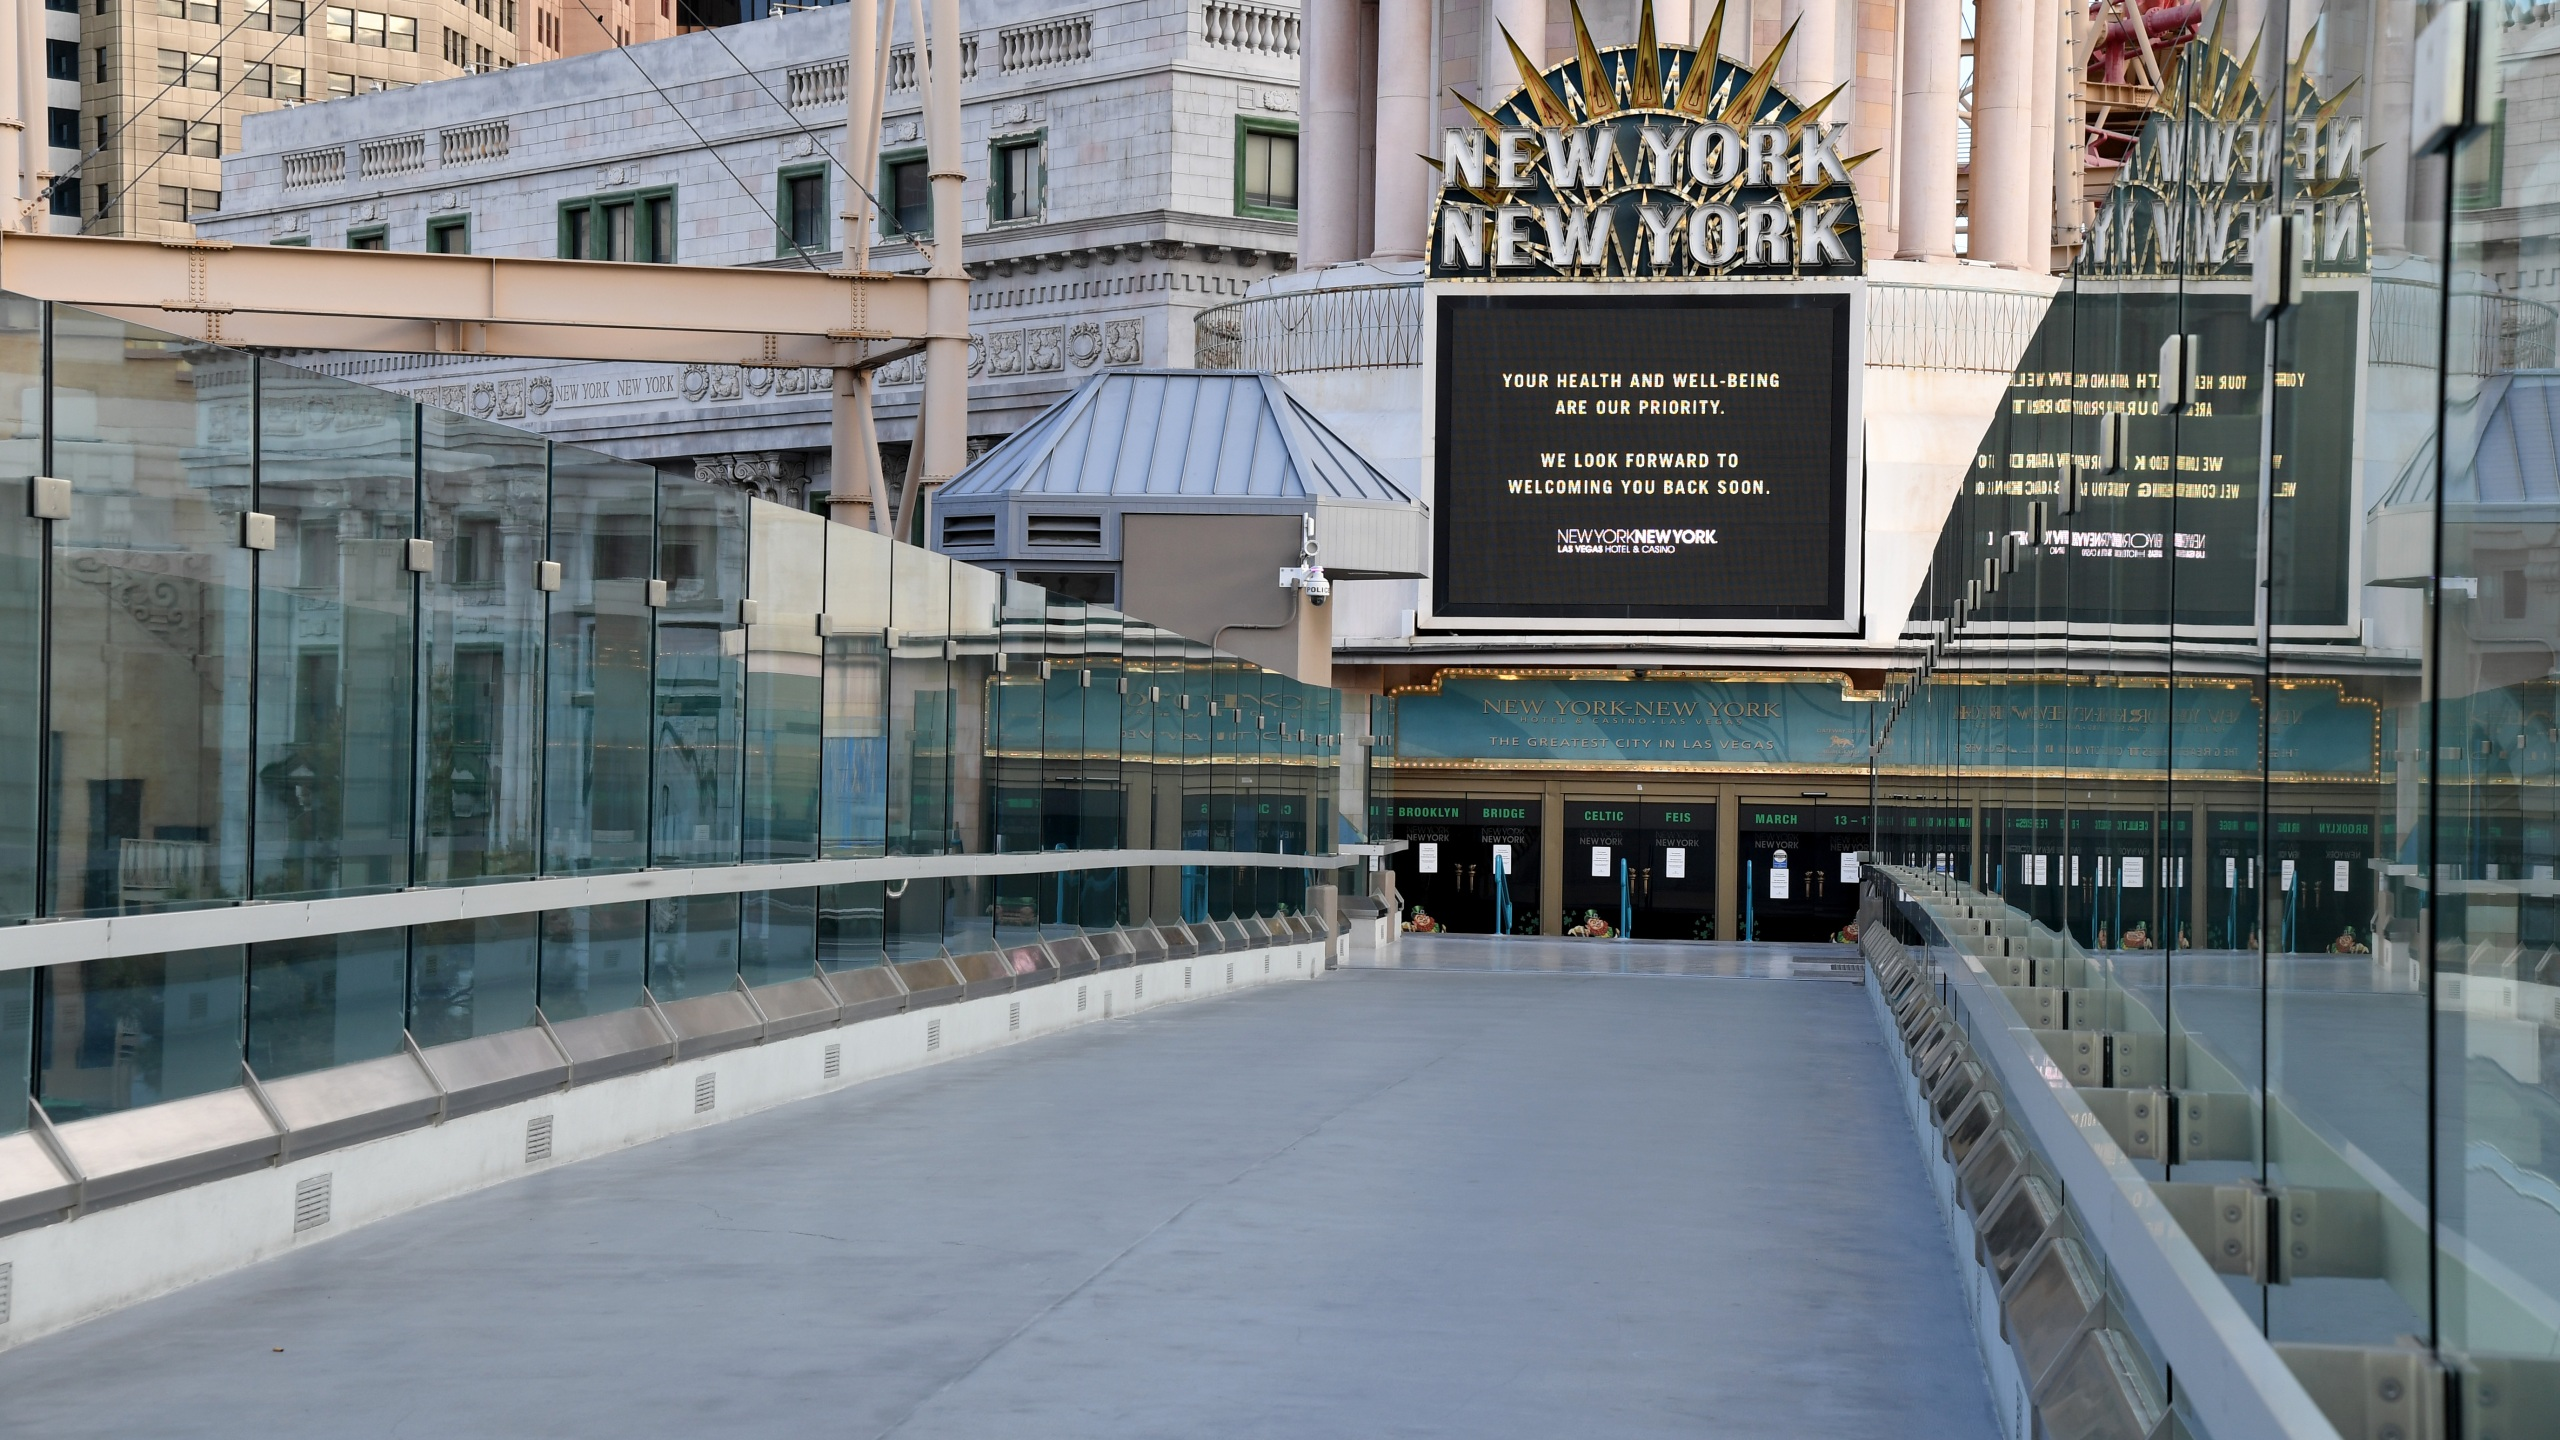 A sign at an entrance at the New York-New York Hotel & Casino displays a message after the Las Vegas Strip resort was closed as the coronavirus continues to spread across the U.S. on March 17, 2020. (Credit: Ethan Miller / Getty Images)